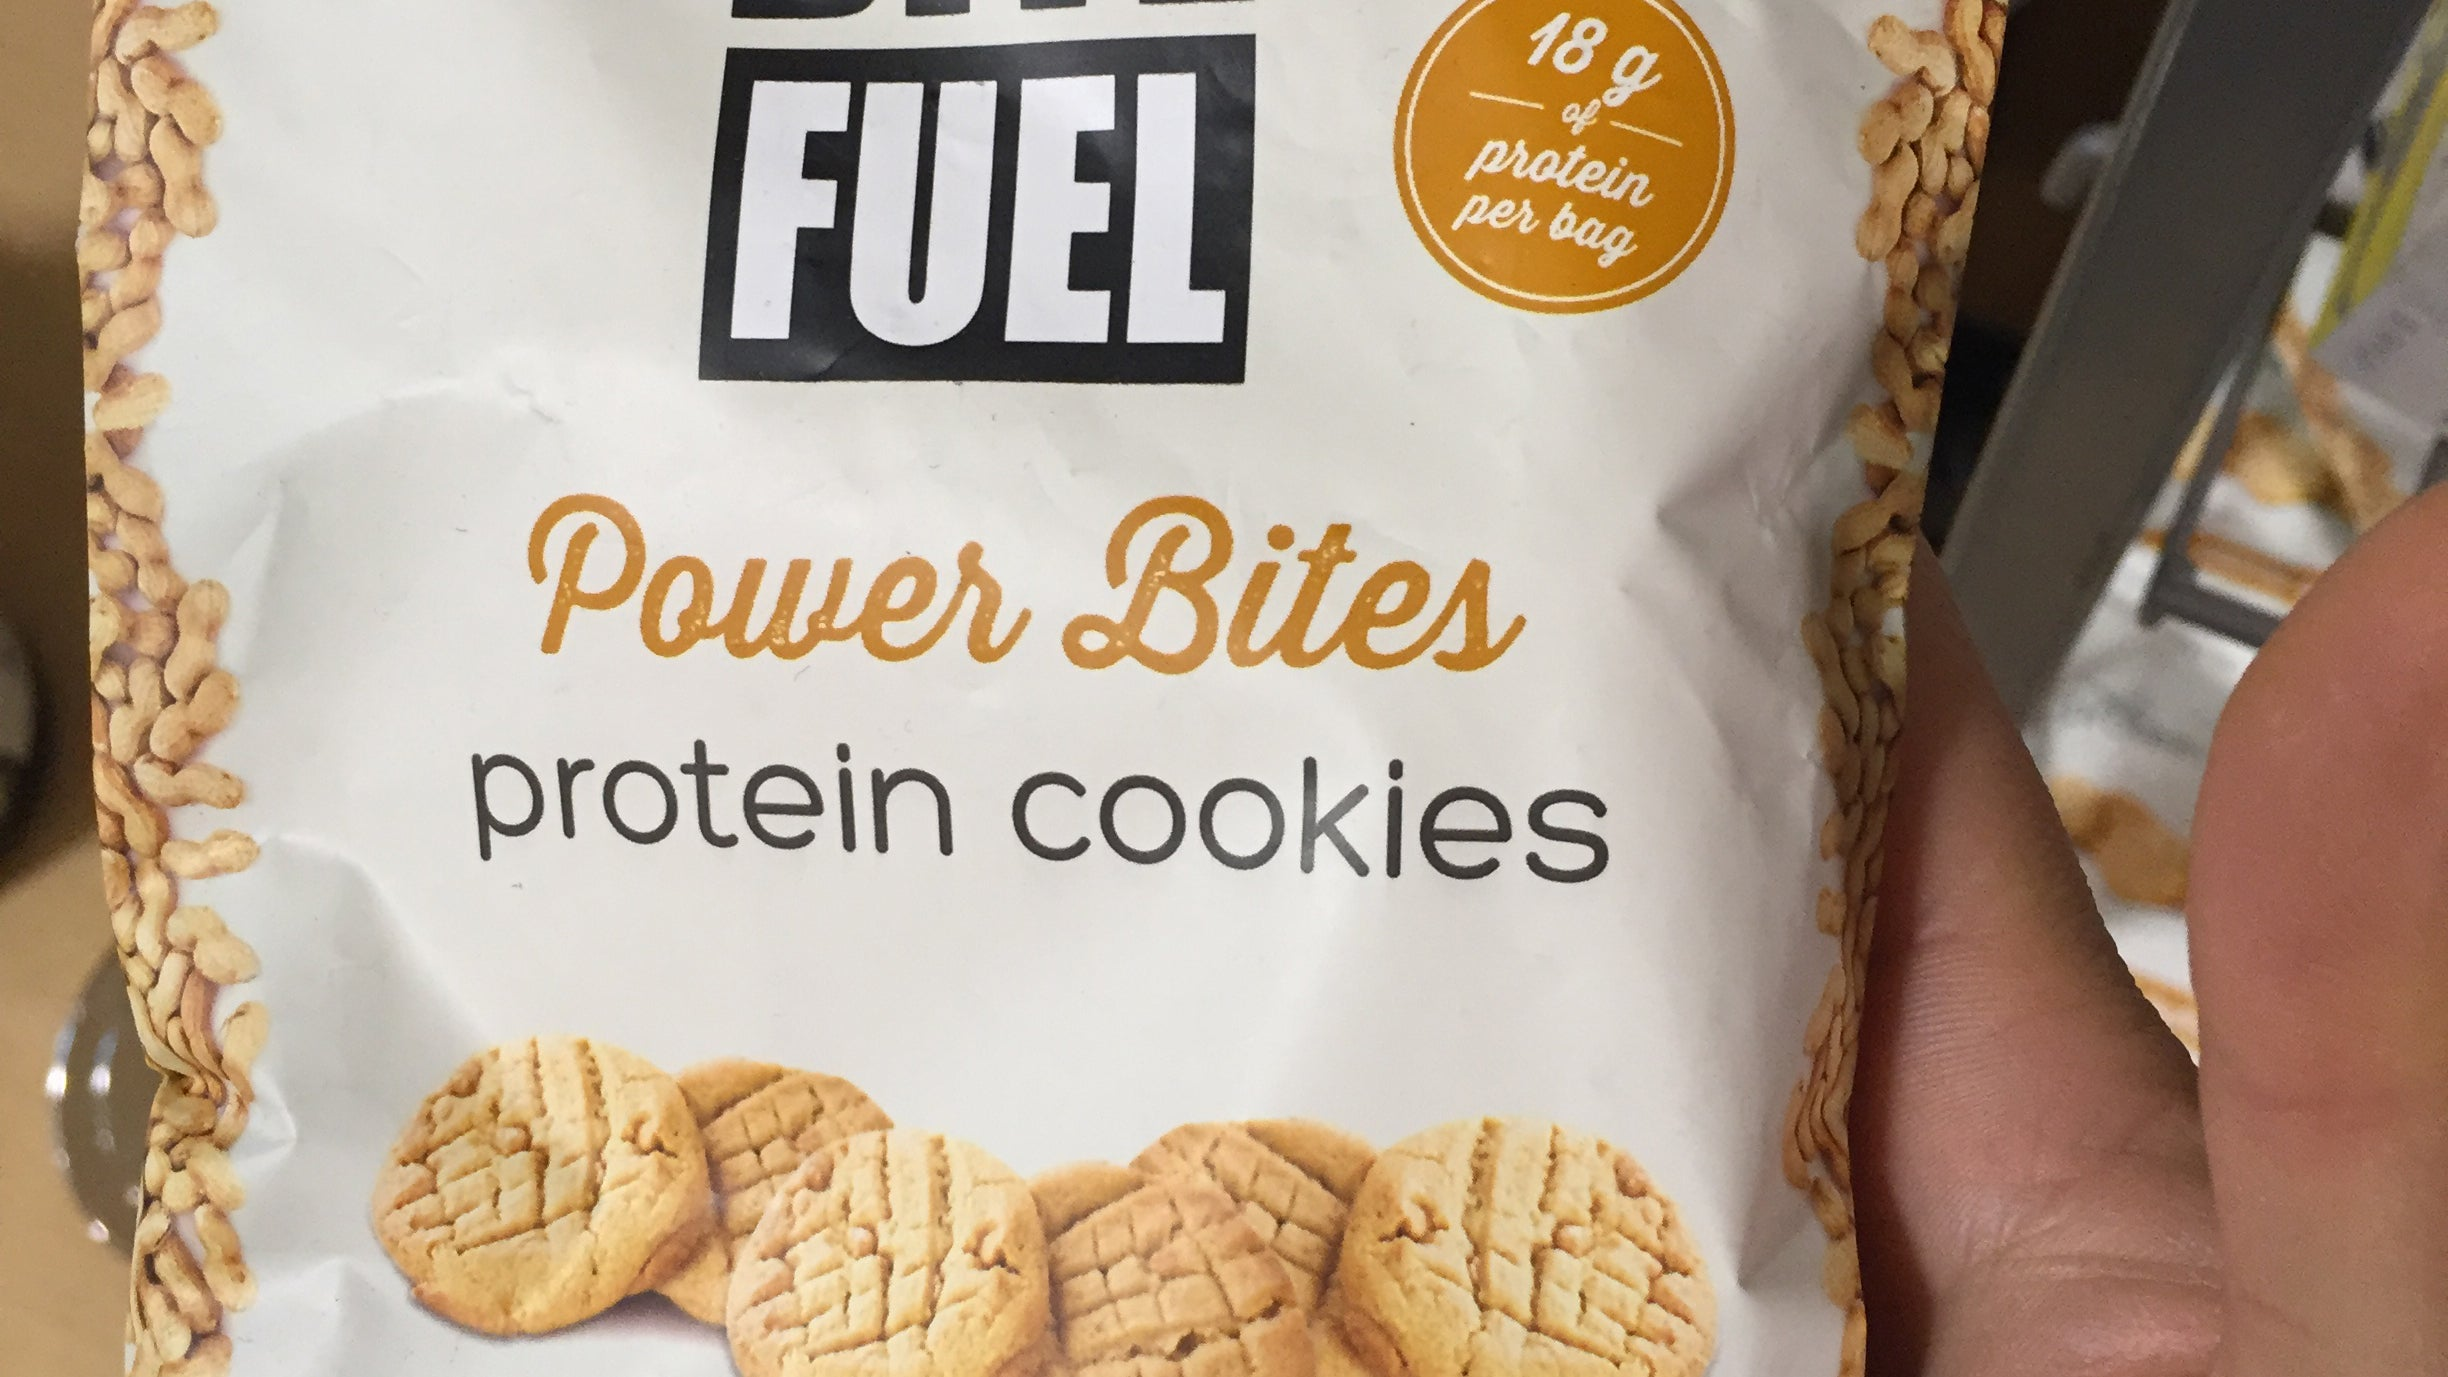 Don't Be Fooled By 'Protein Cookies' And Other 'Protein' Junk Foods